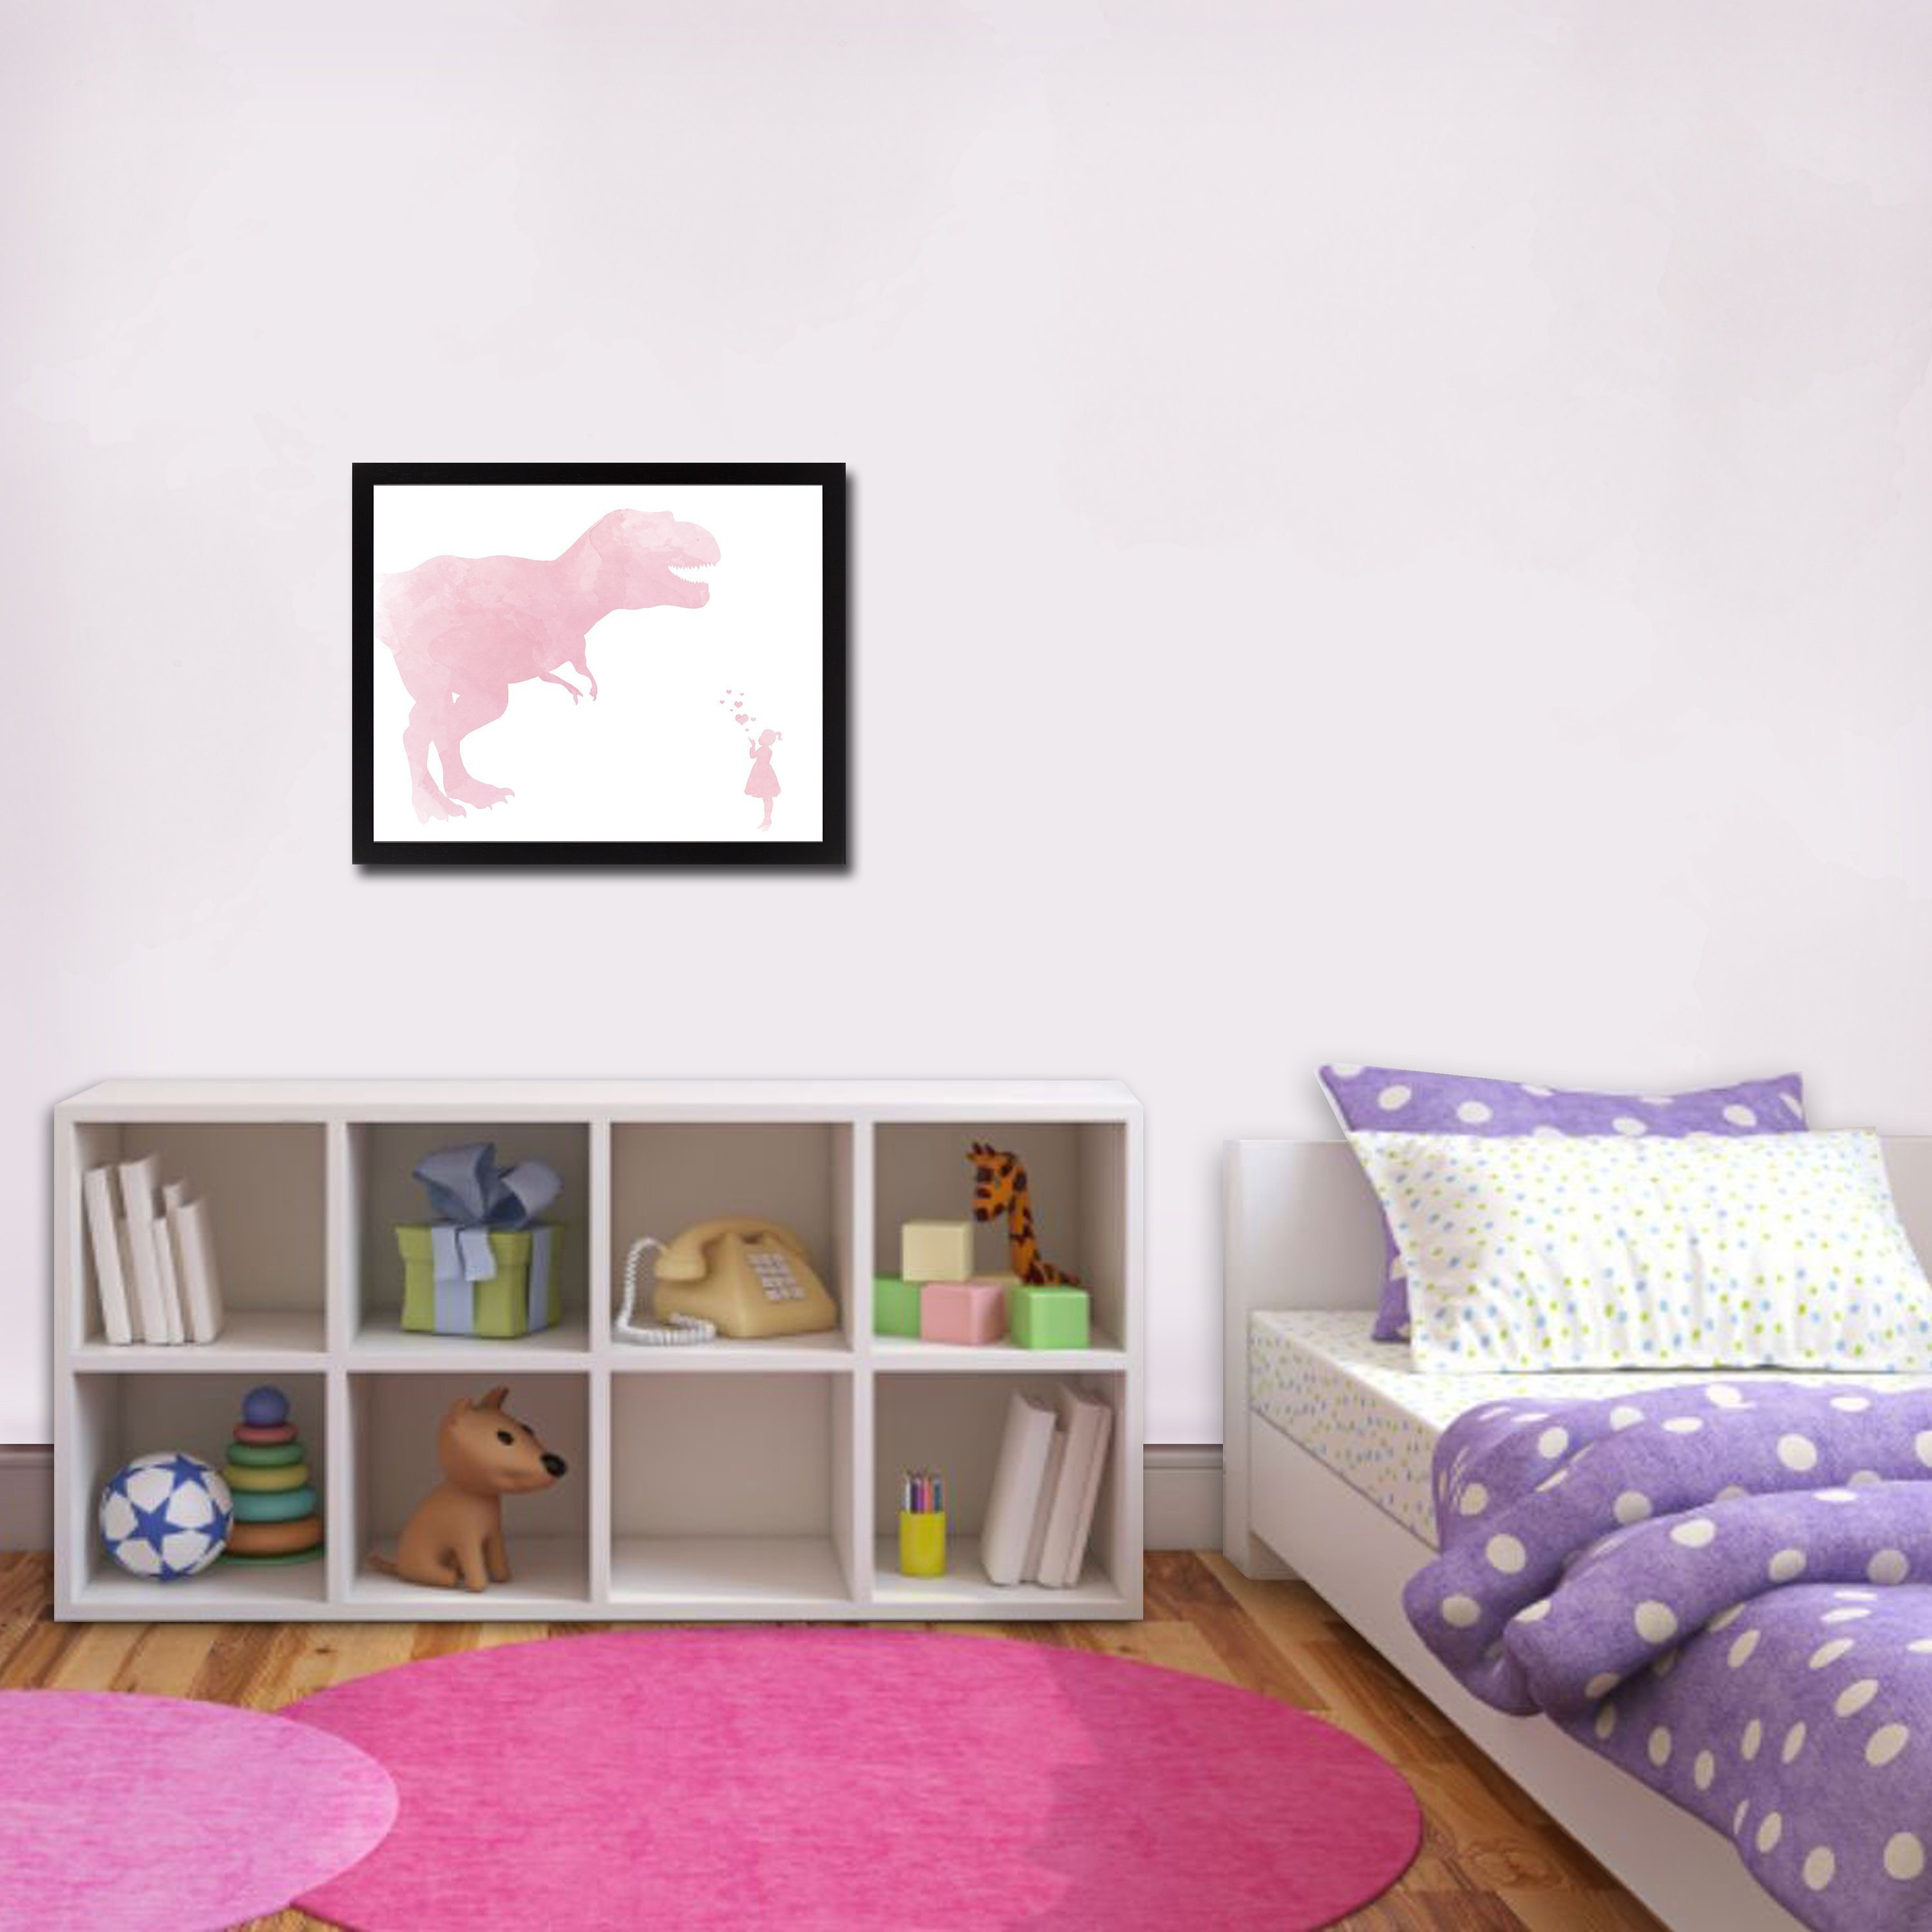 Girl Bedroom Decorating Ideas Awesome Girl Dinosaur Art Dinosaur Nursery Girls Bedroom Art Girls Bedroom Decor Girls Dinosaur Decor Dinosaur Decor Girl Baby Shower